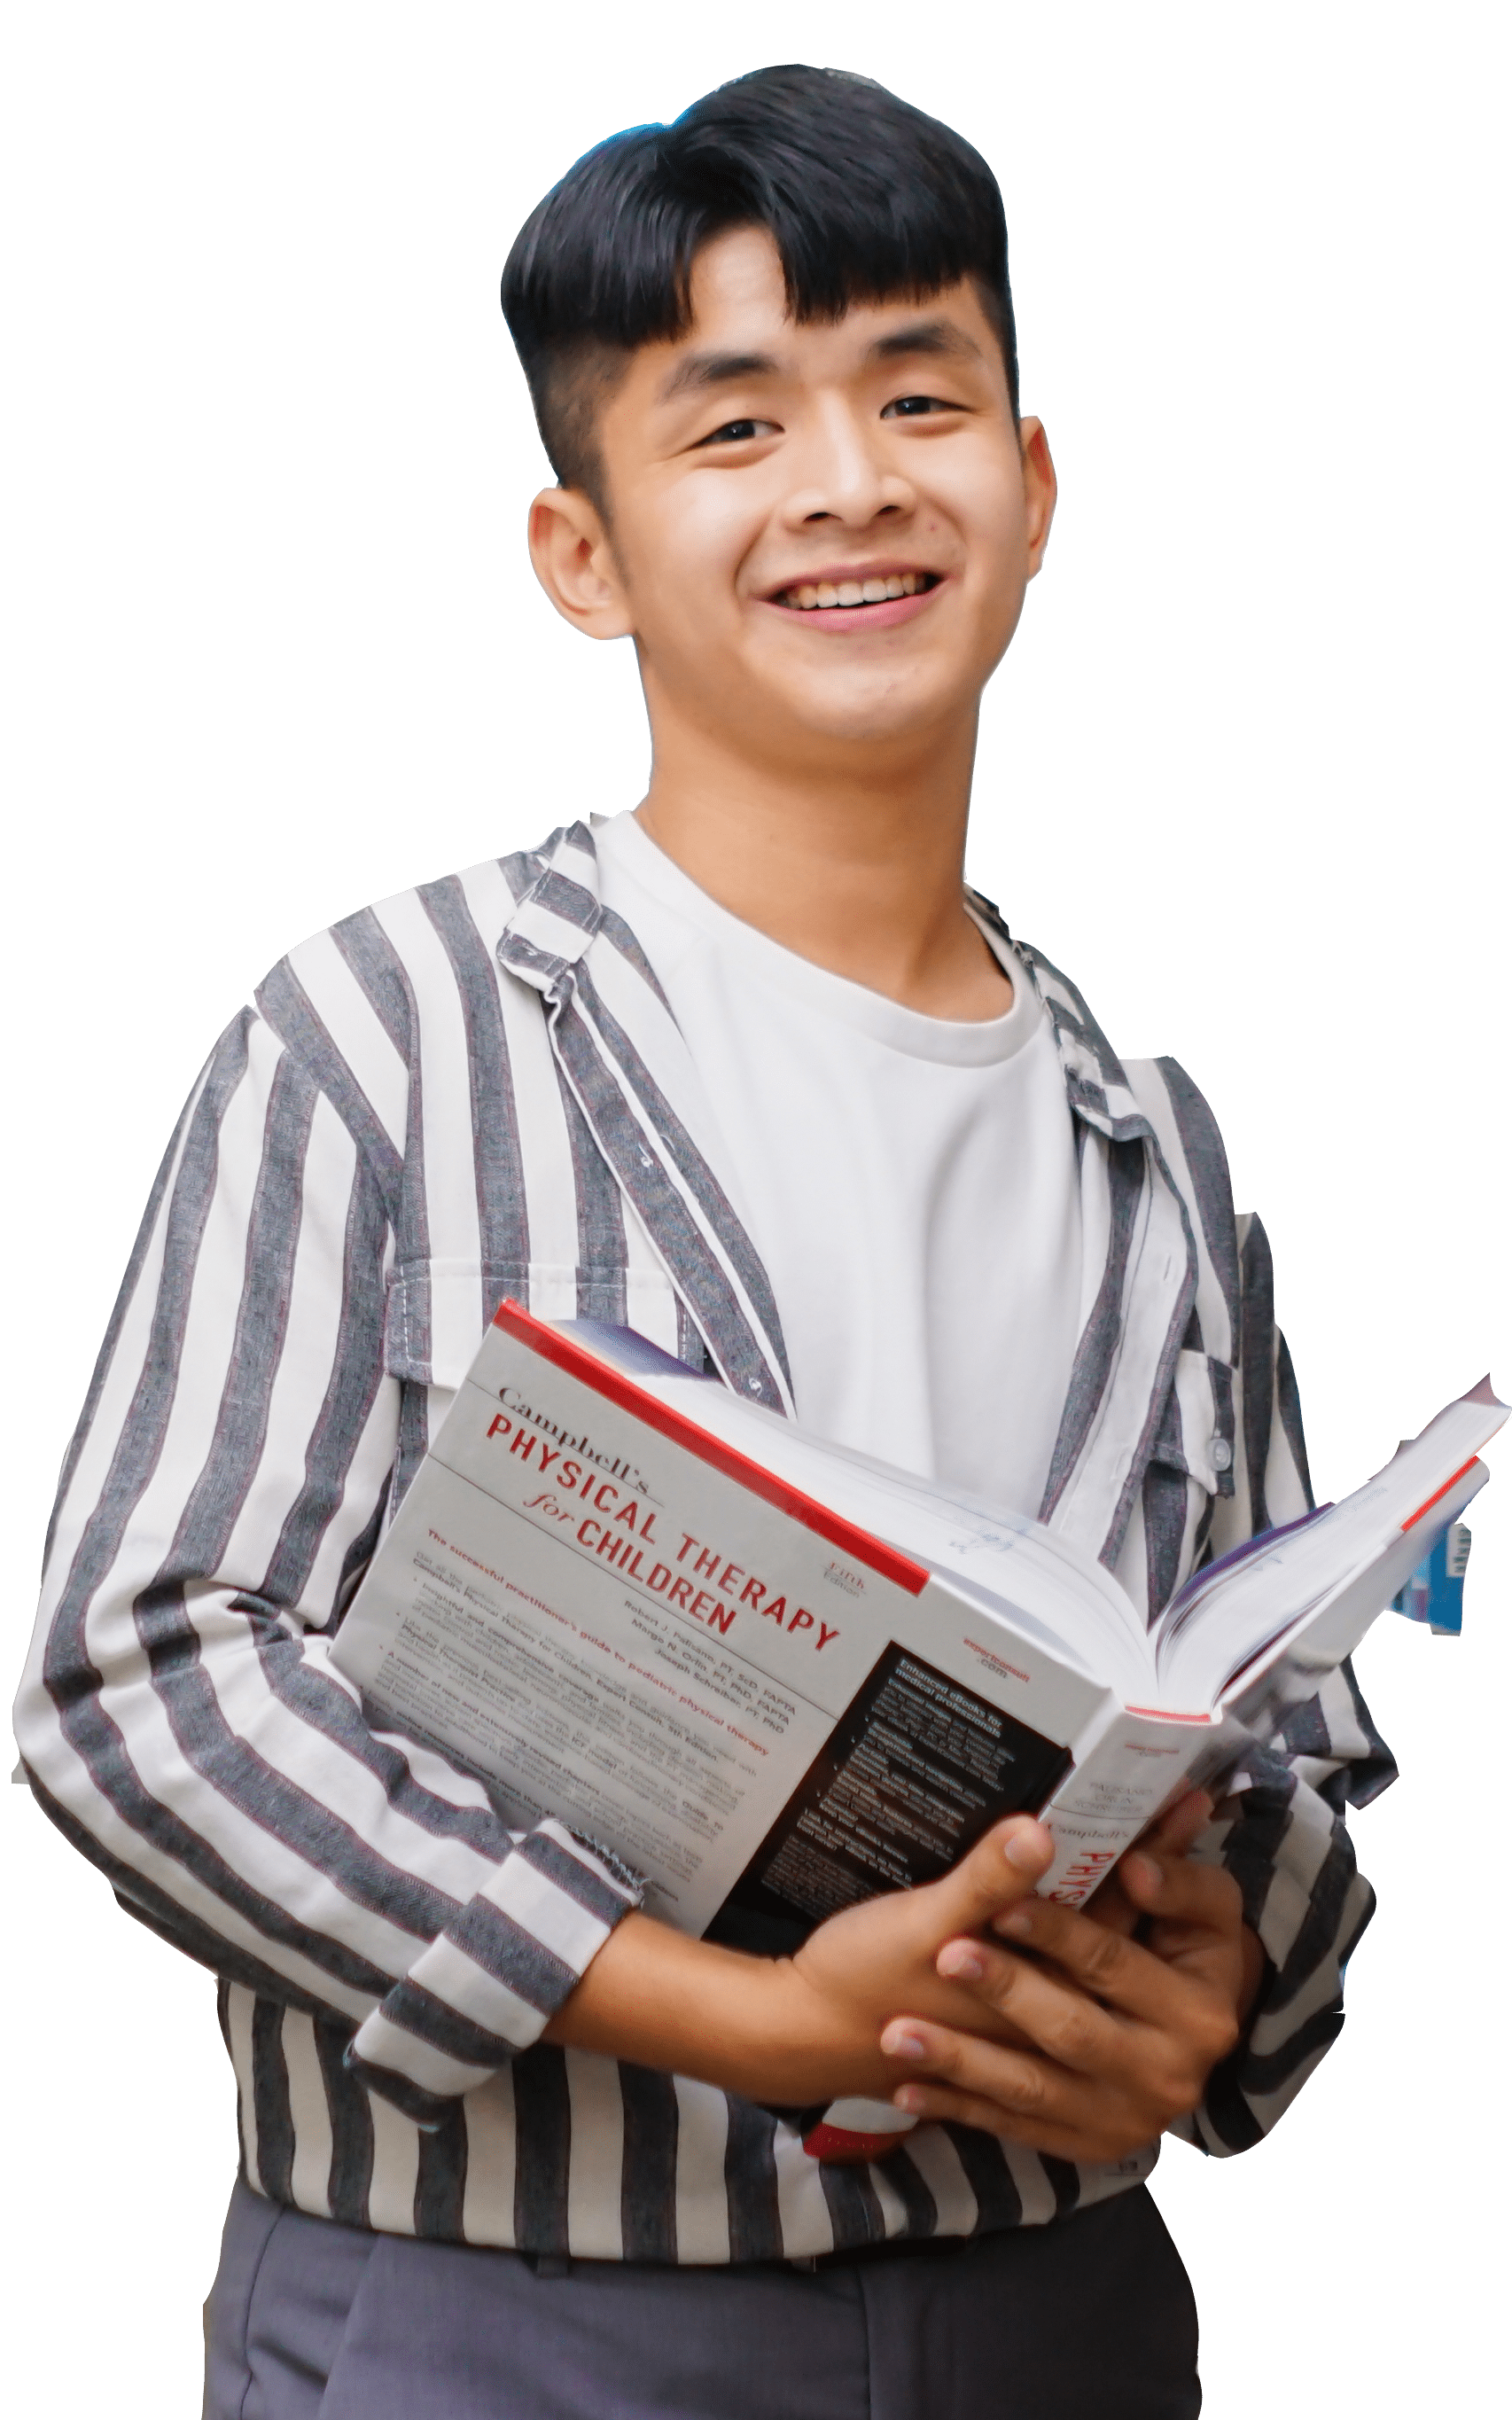 an Asian student standing and holding a book